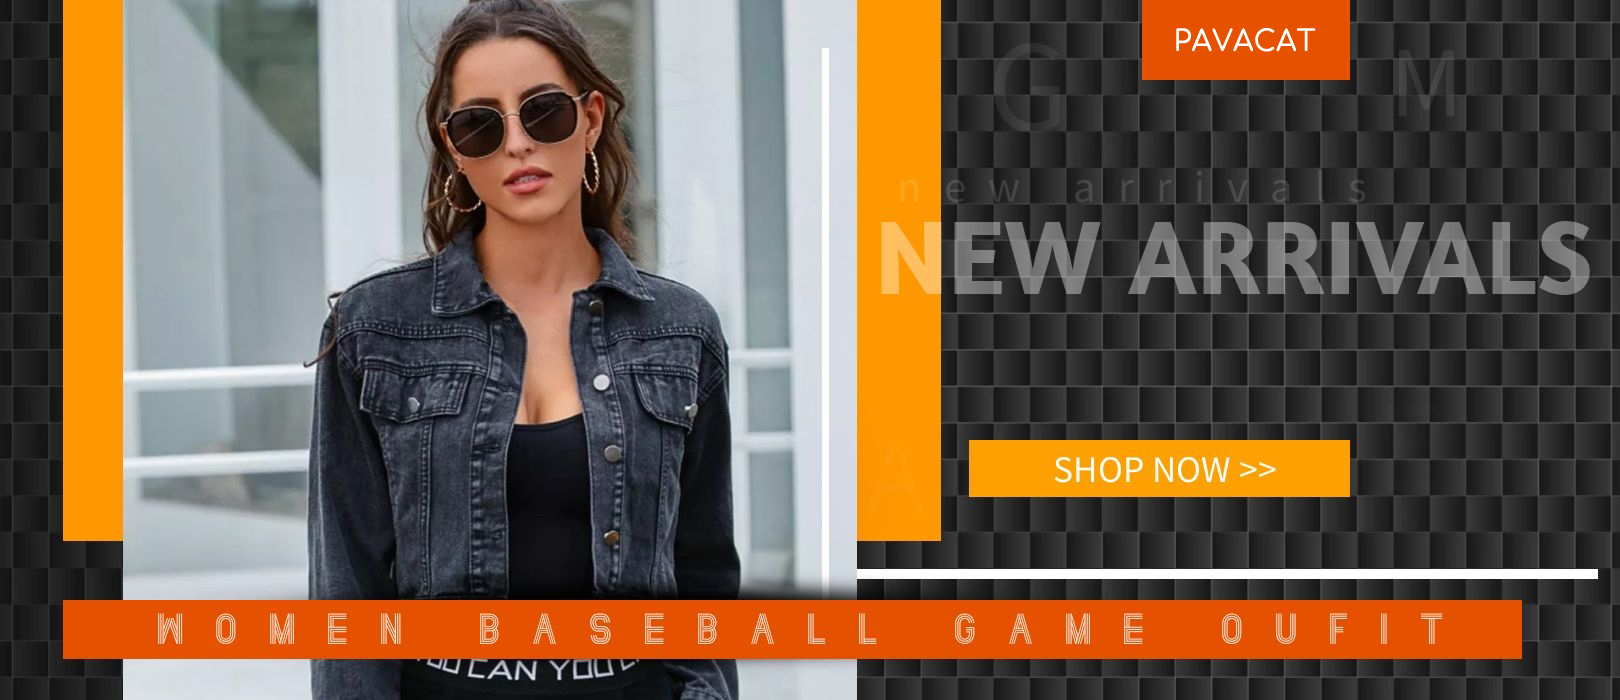 Women Baseball Game Outfit Collection